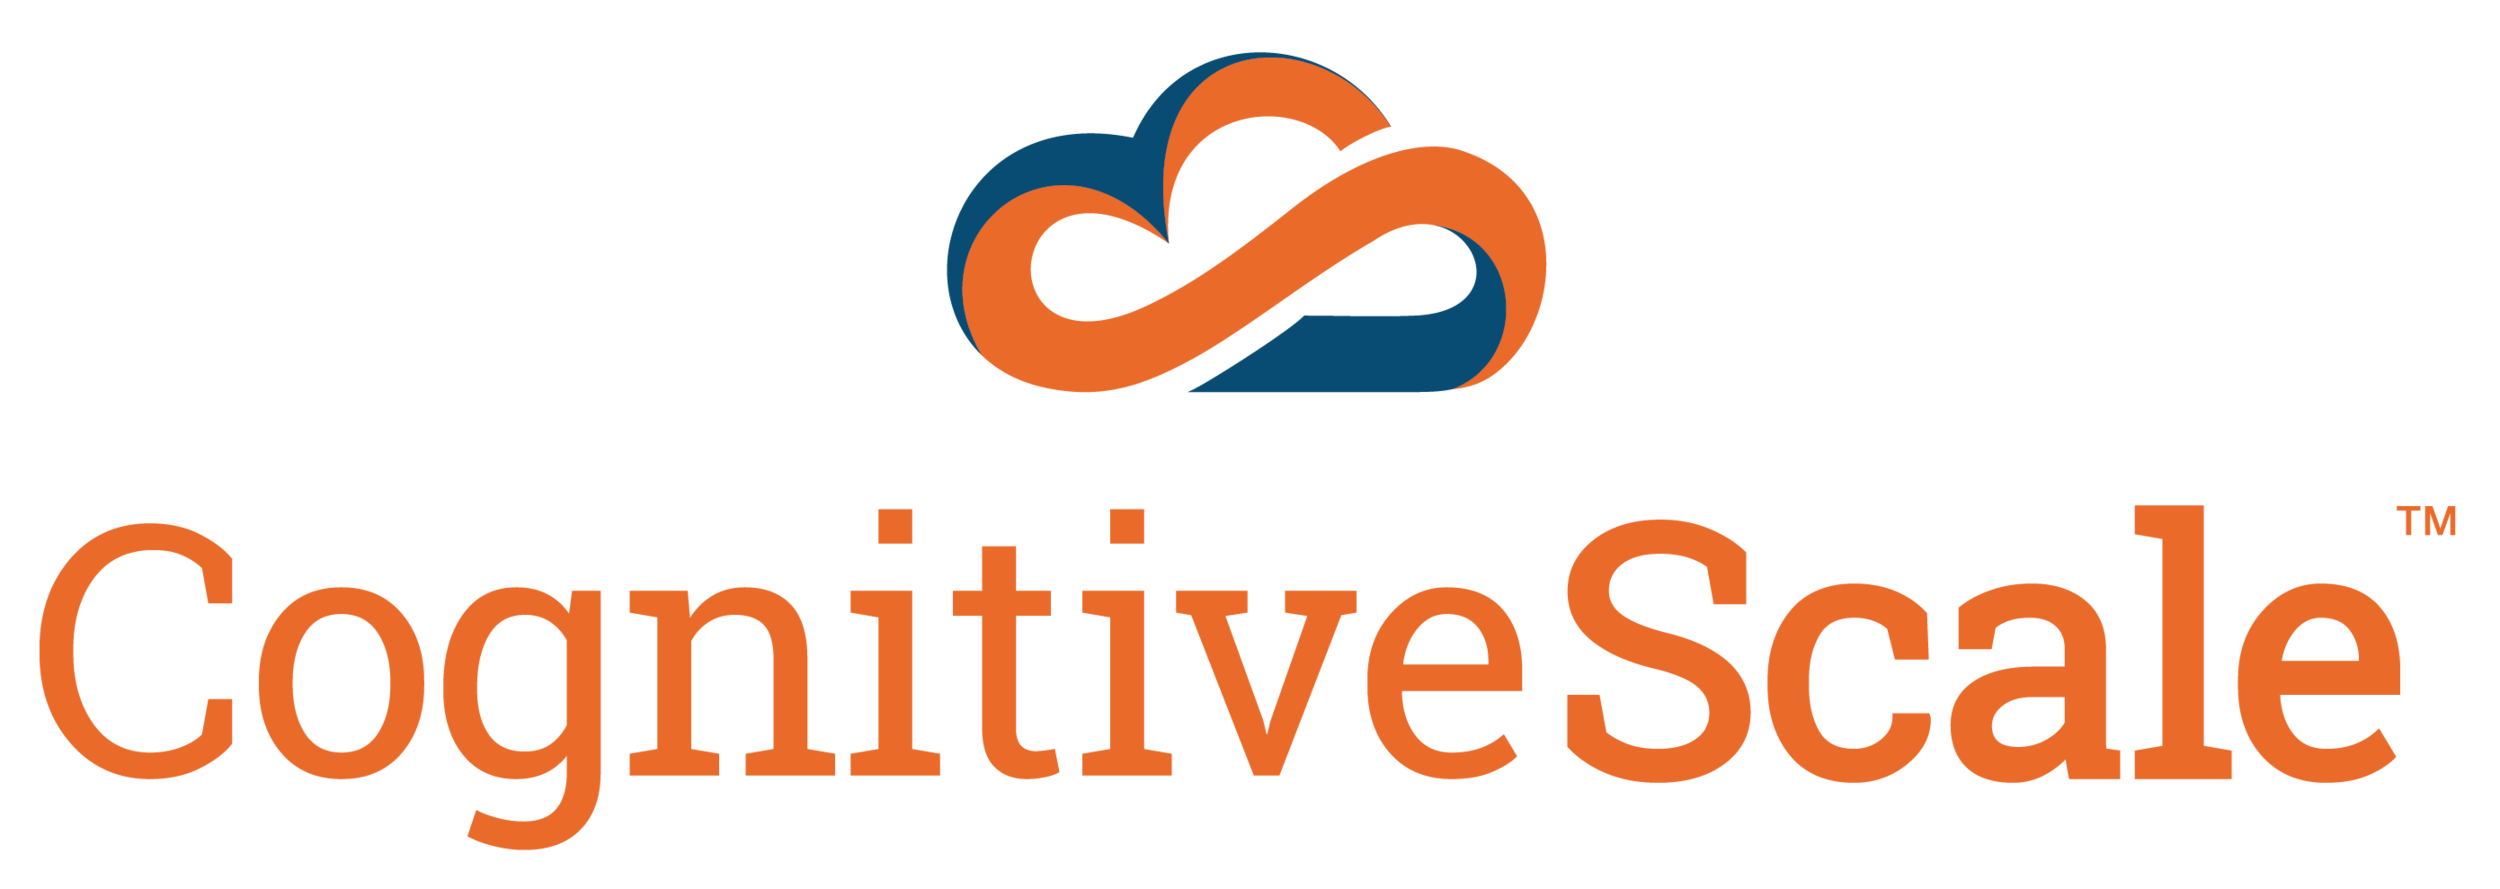 Cognitive_Scale_Logo.png